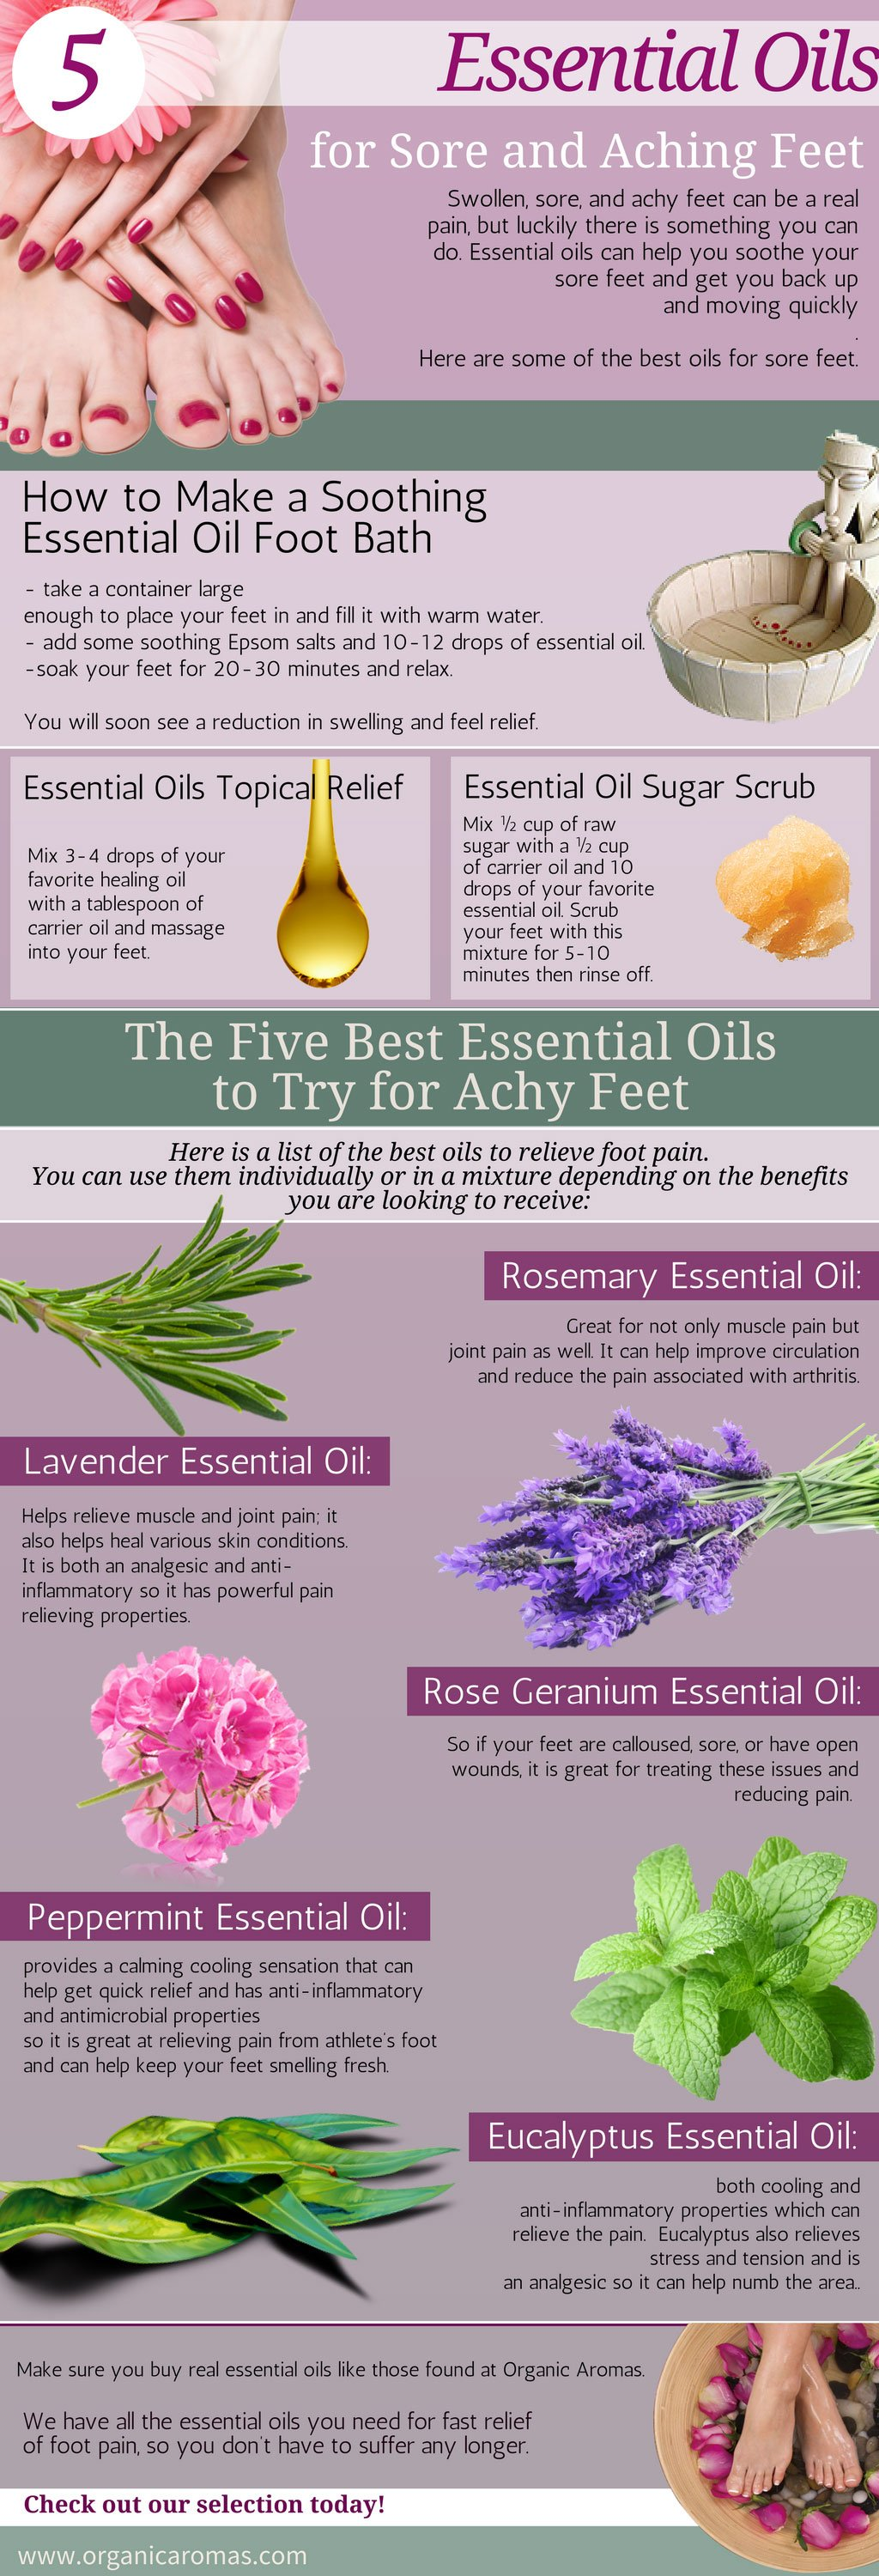 Essential Oils for Sore and Aching Feet